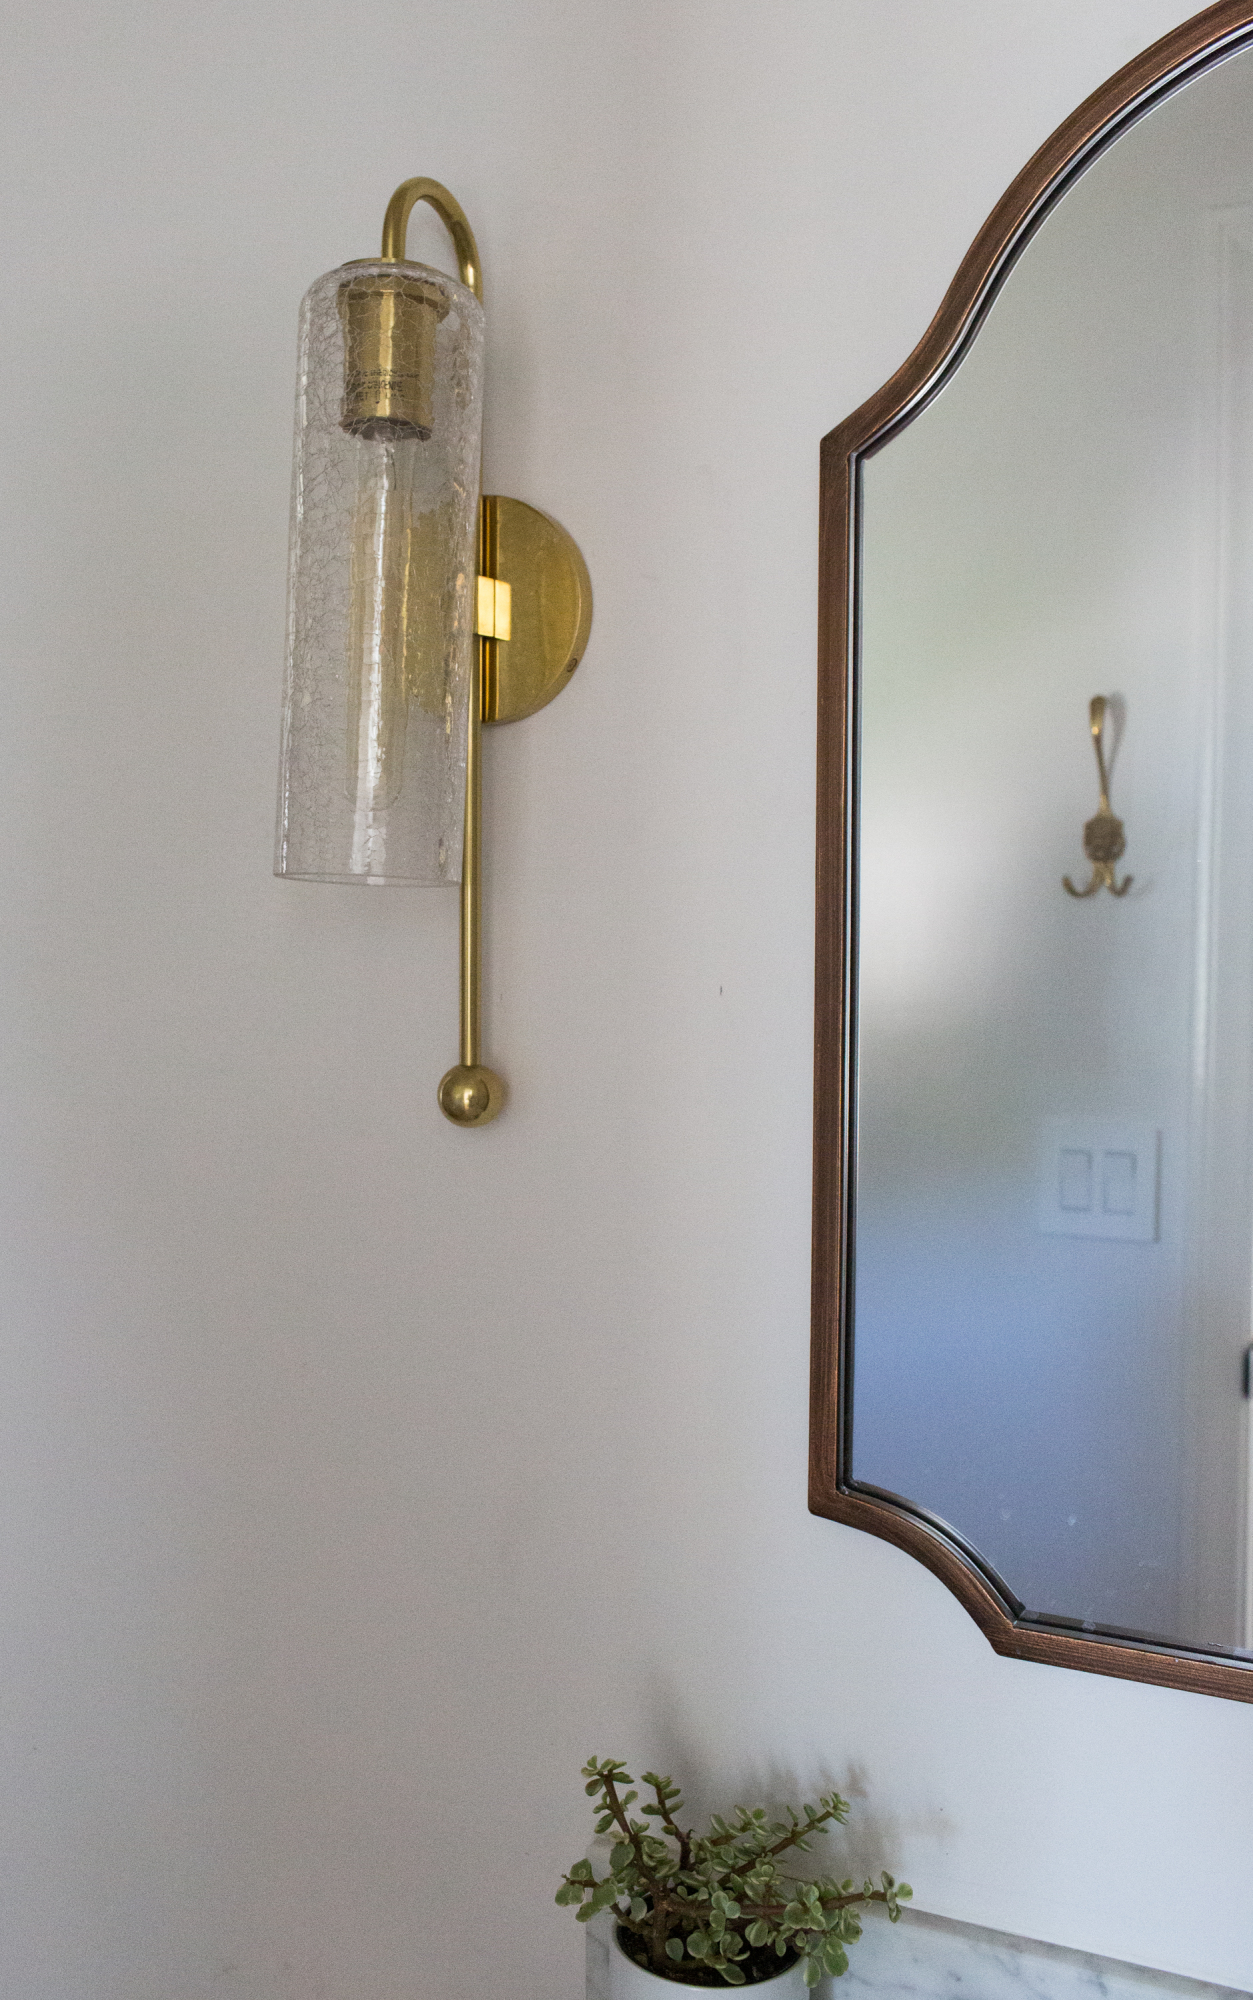 Aged brass wall sconce from Lamps Plus